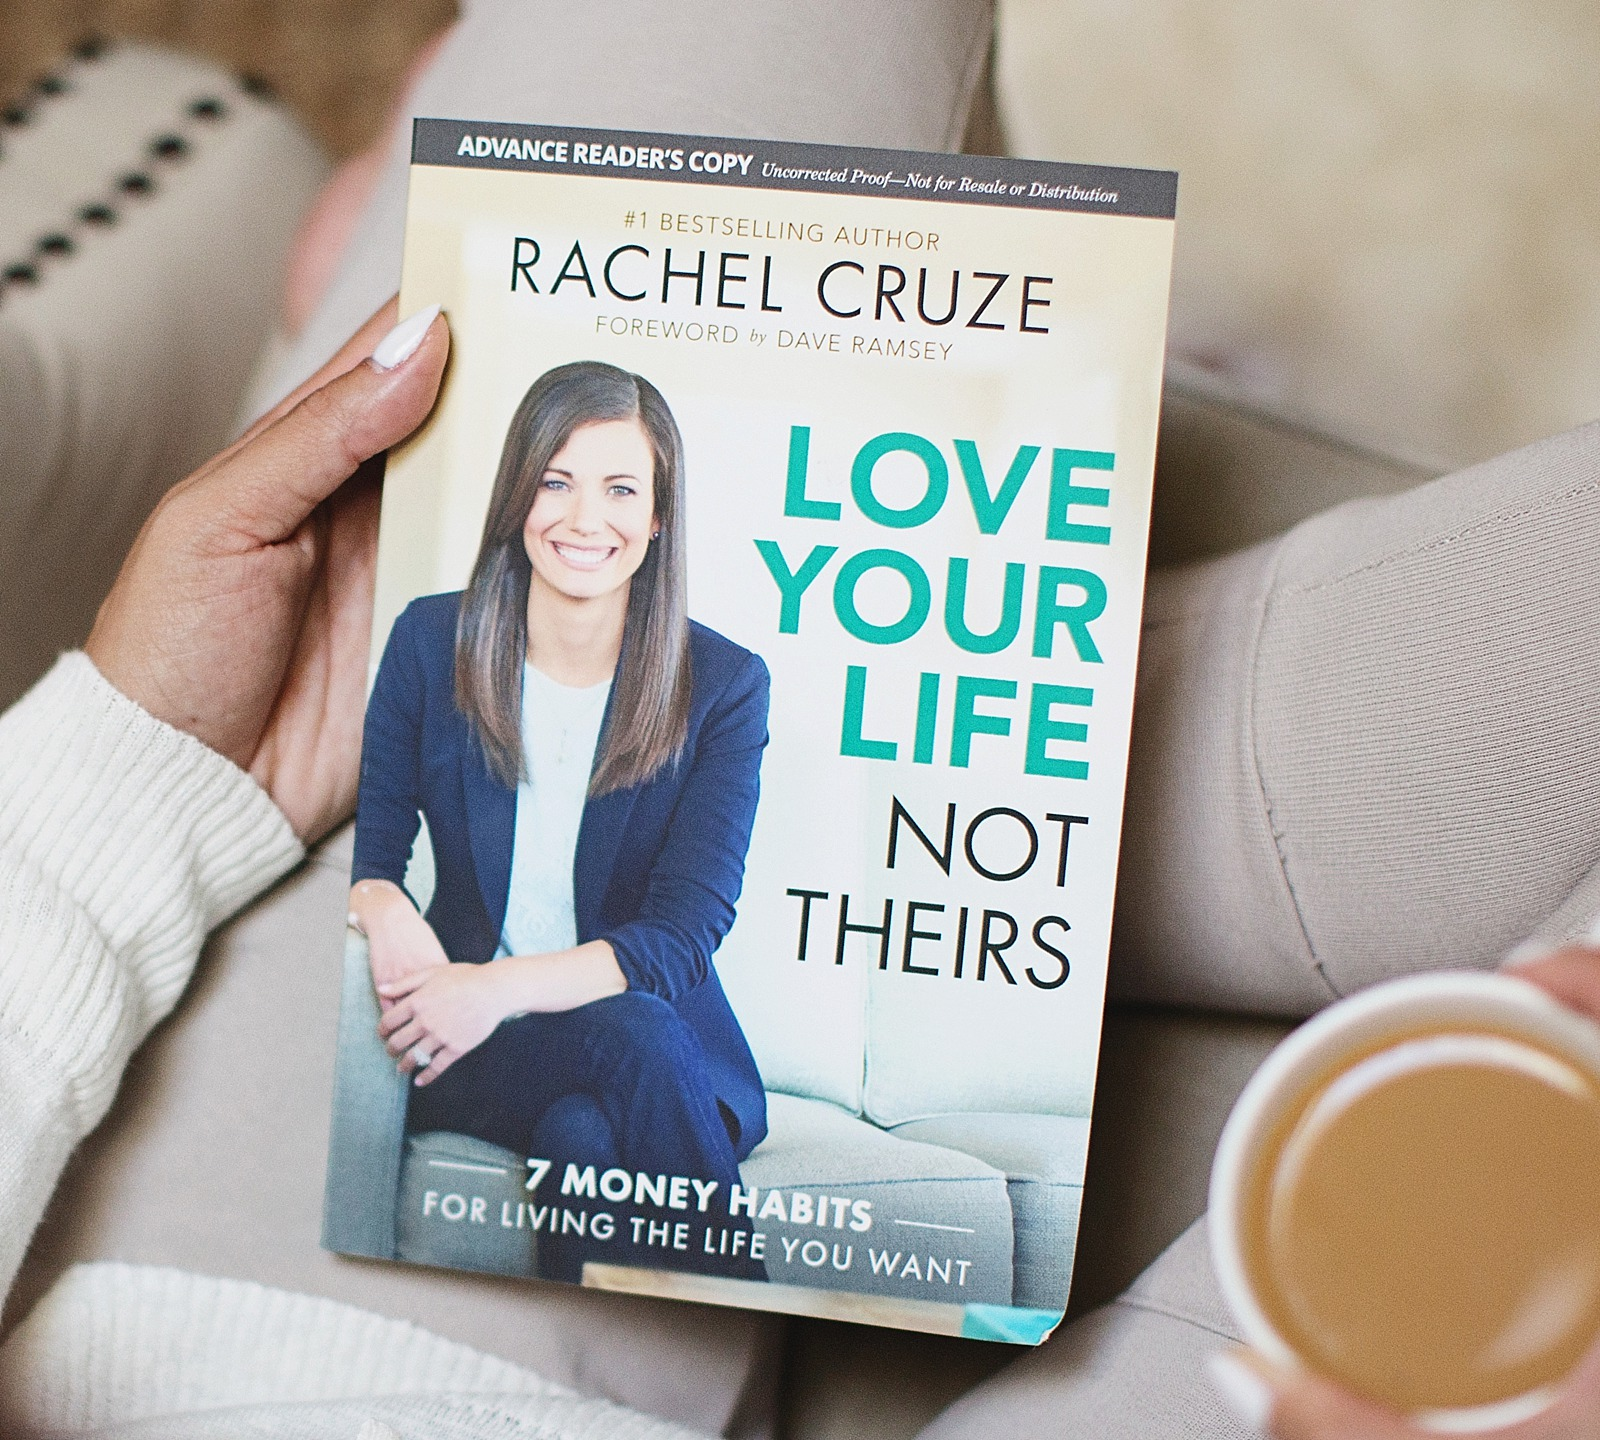 money-saving-dave-ramsey-rachel-cruze-love-your-life-not-theirs-book-review-9259